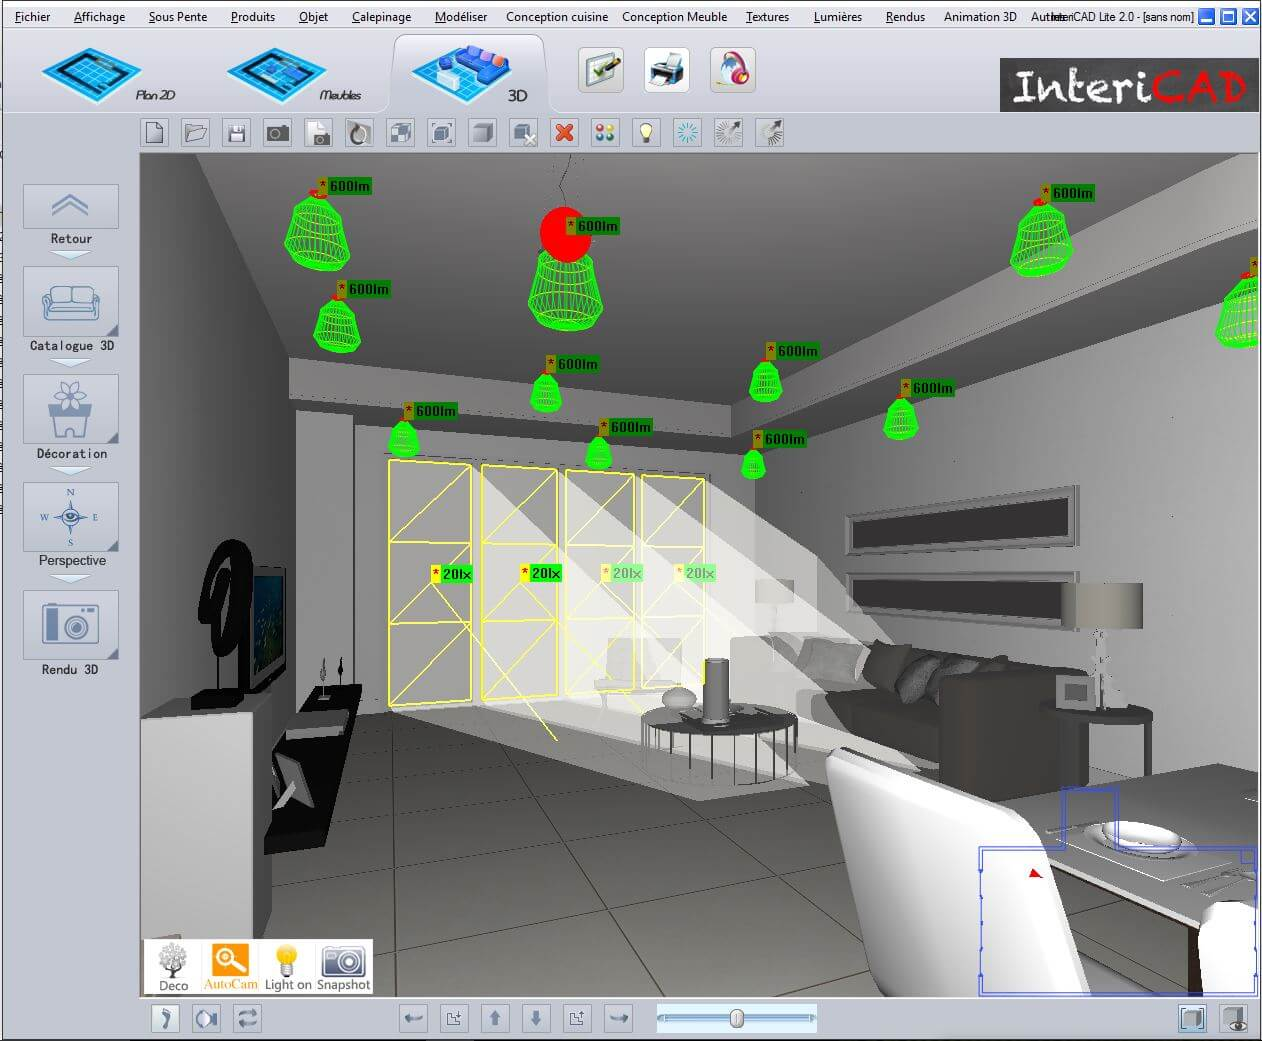 Logiciel de decoration interieur 3d best awesome cheap - Logiciel decoration interieur a partir de photo ...